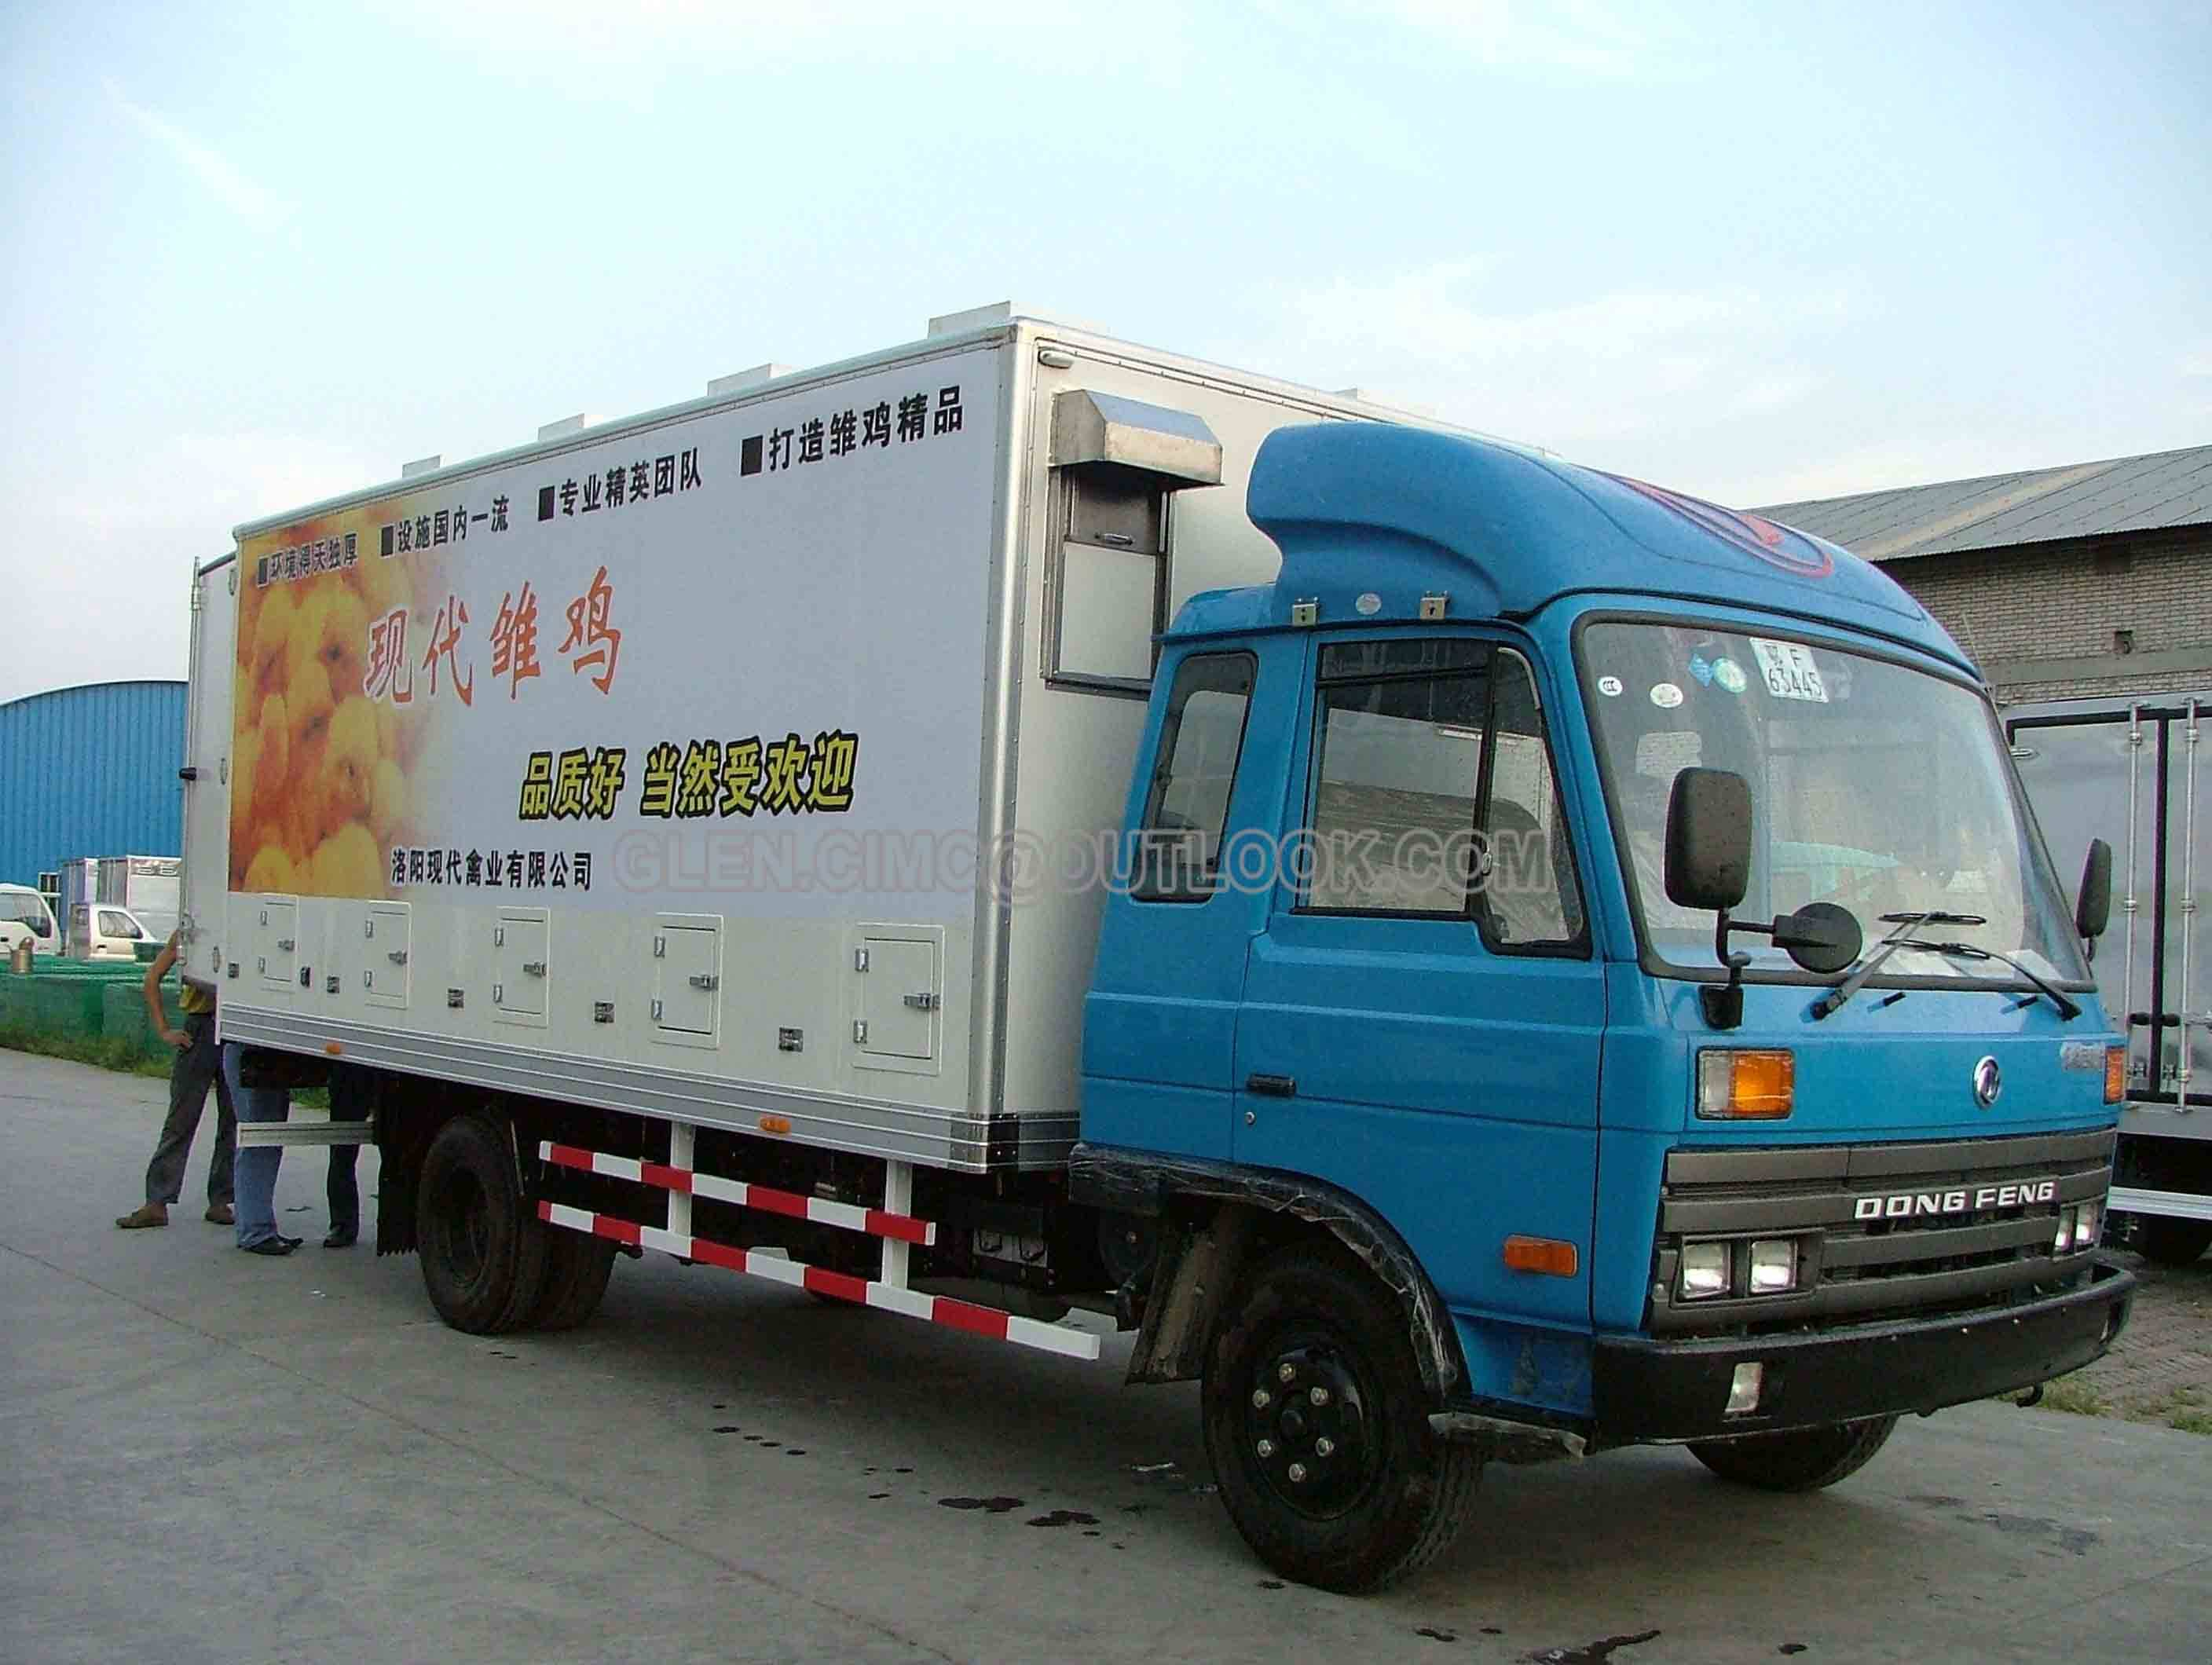 Chicken Transport Truck